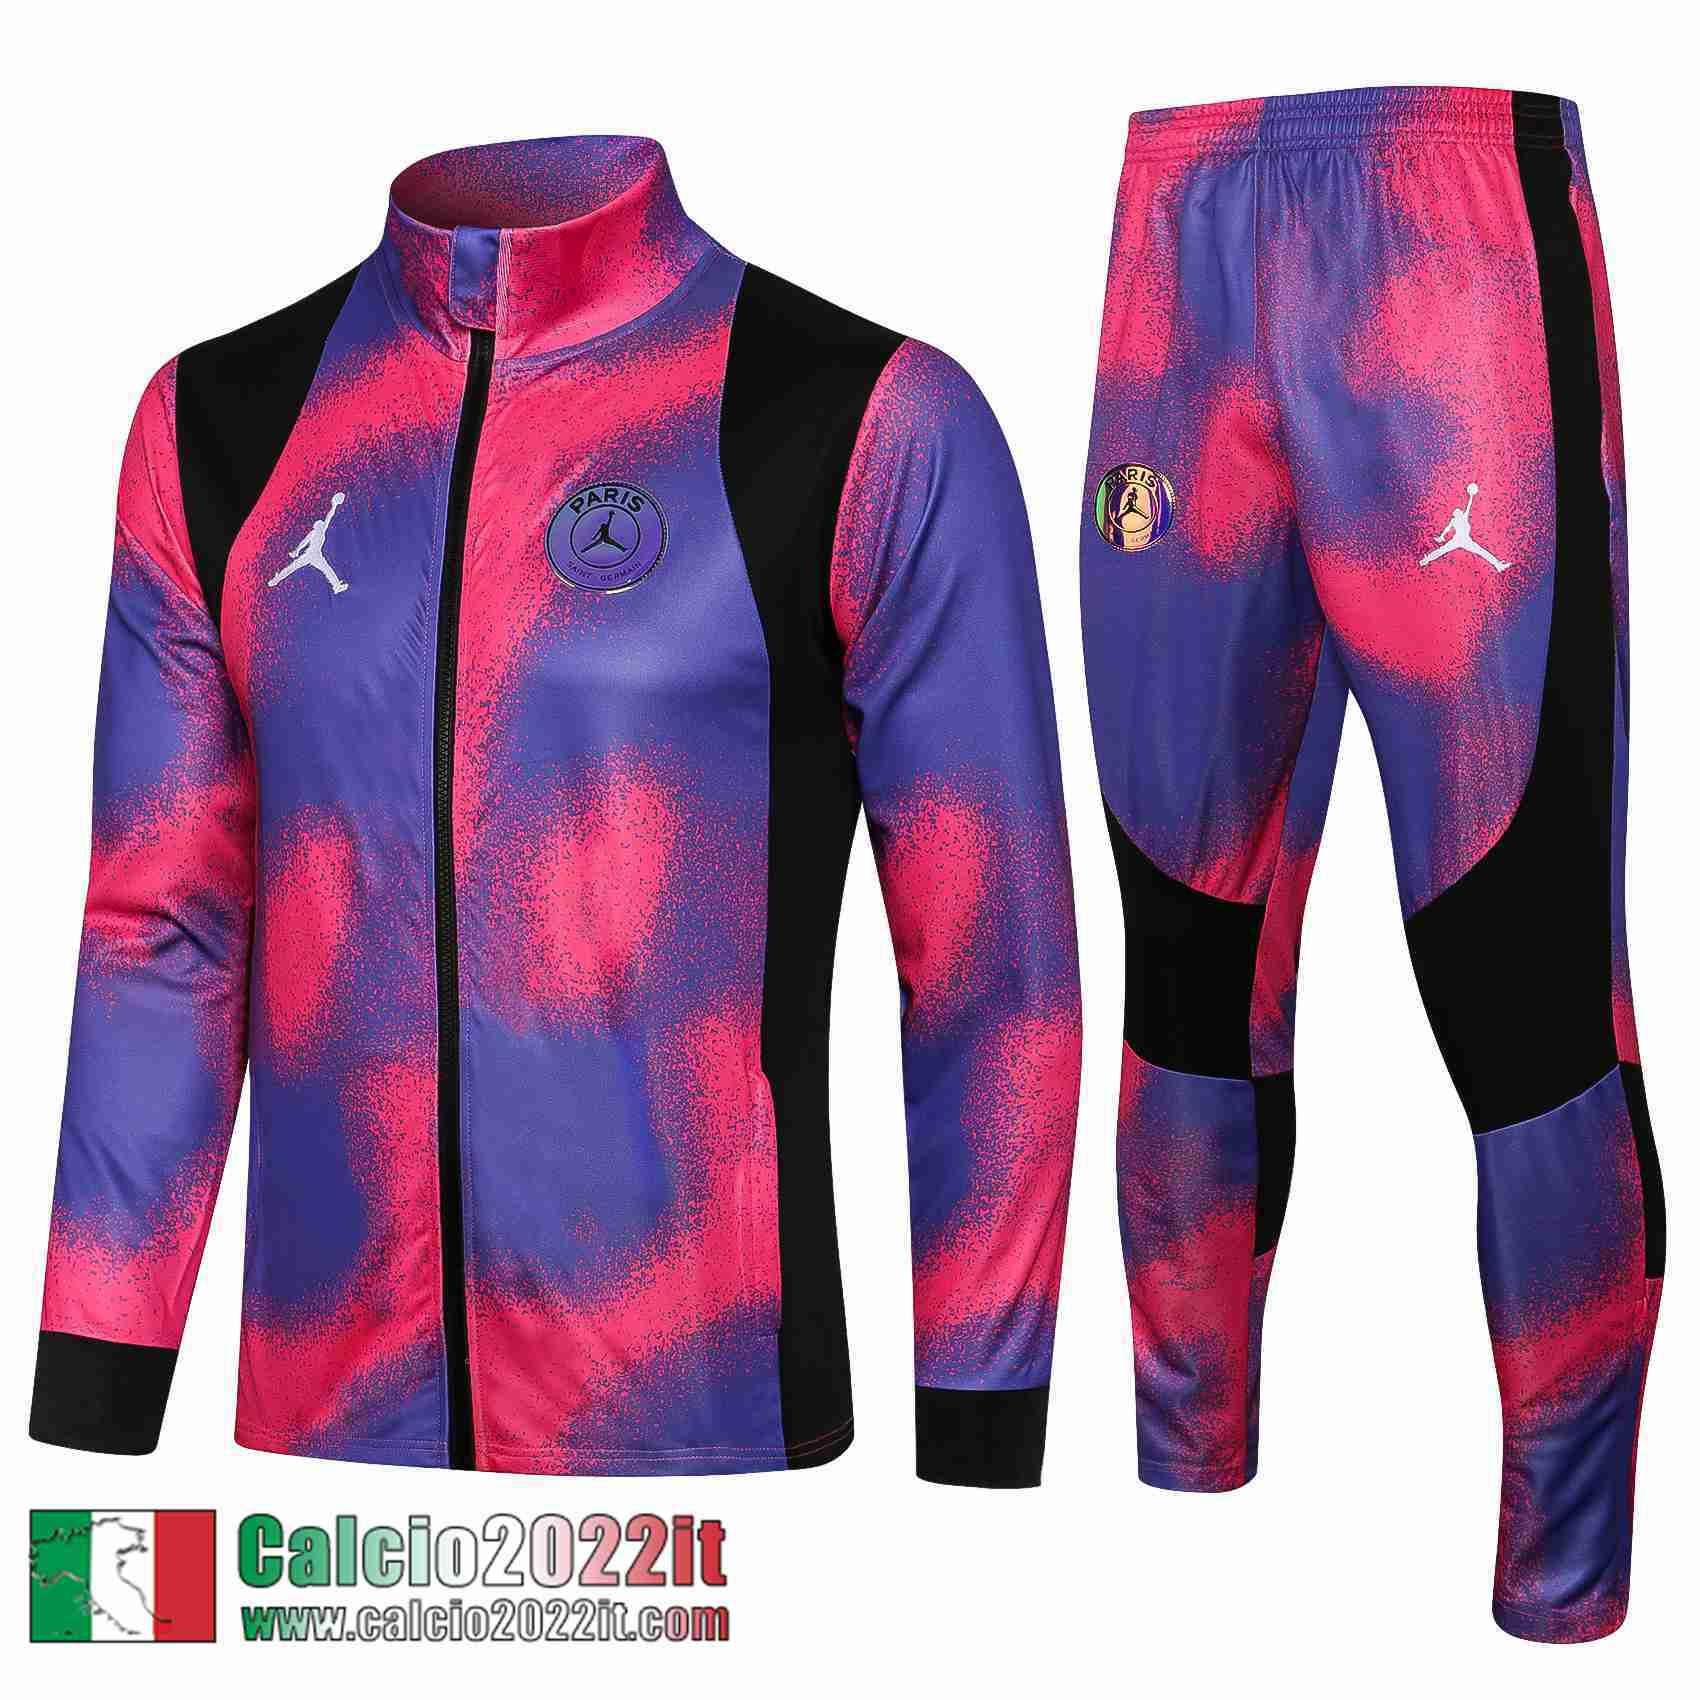 Paris Saint Germain Psg Air Jordan Full-Zip Giacca Multicolore Jk11 2021 2022